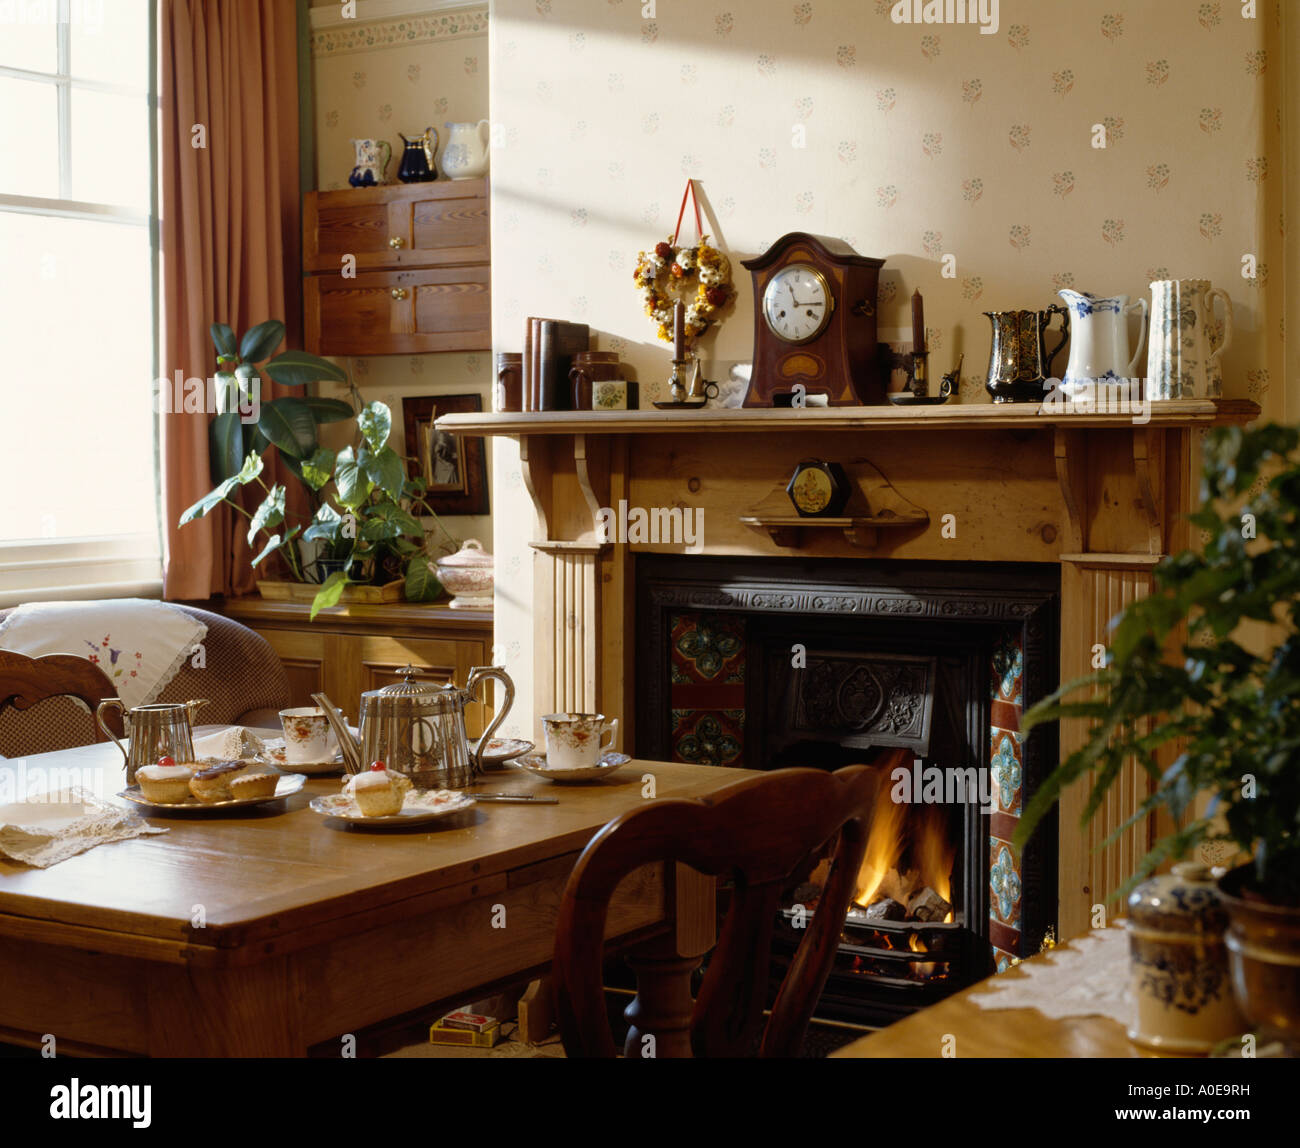 traditional settings wallpaper stockfotos traditional settings wallpaper bilder alamy. Black Bedroom Furniture Sets. Home Design Ideas